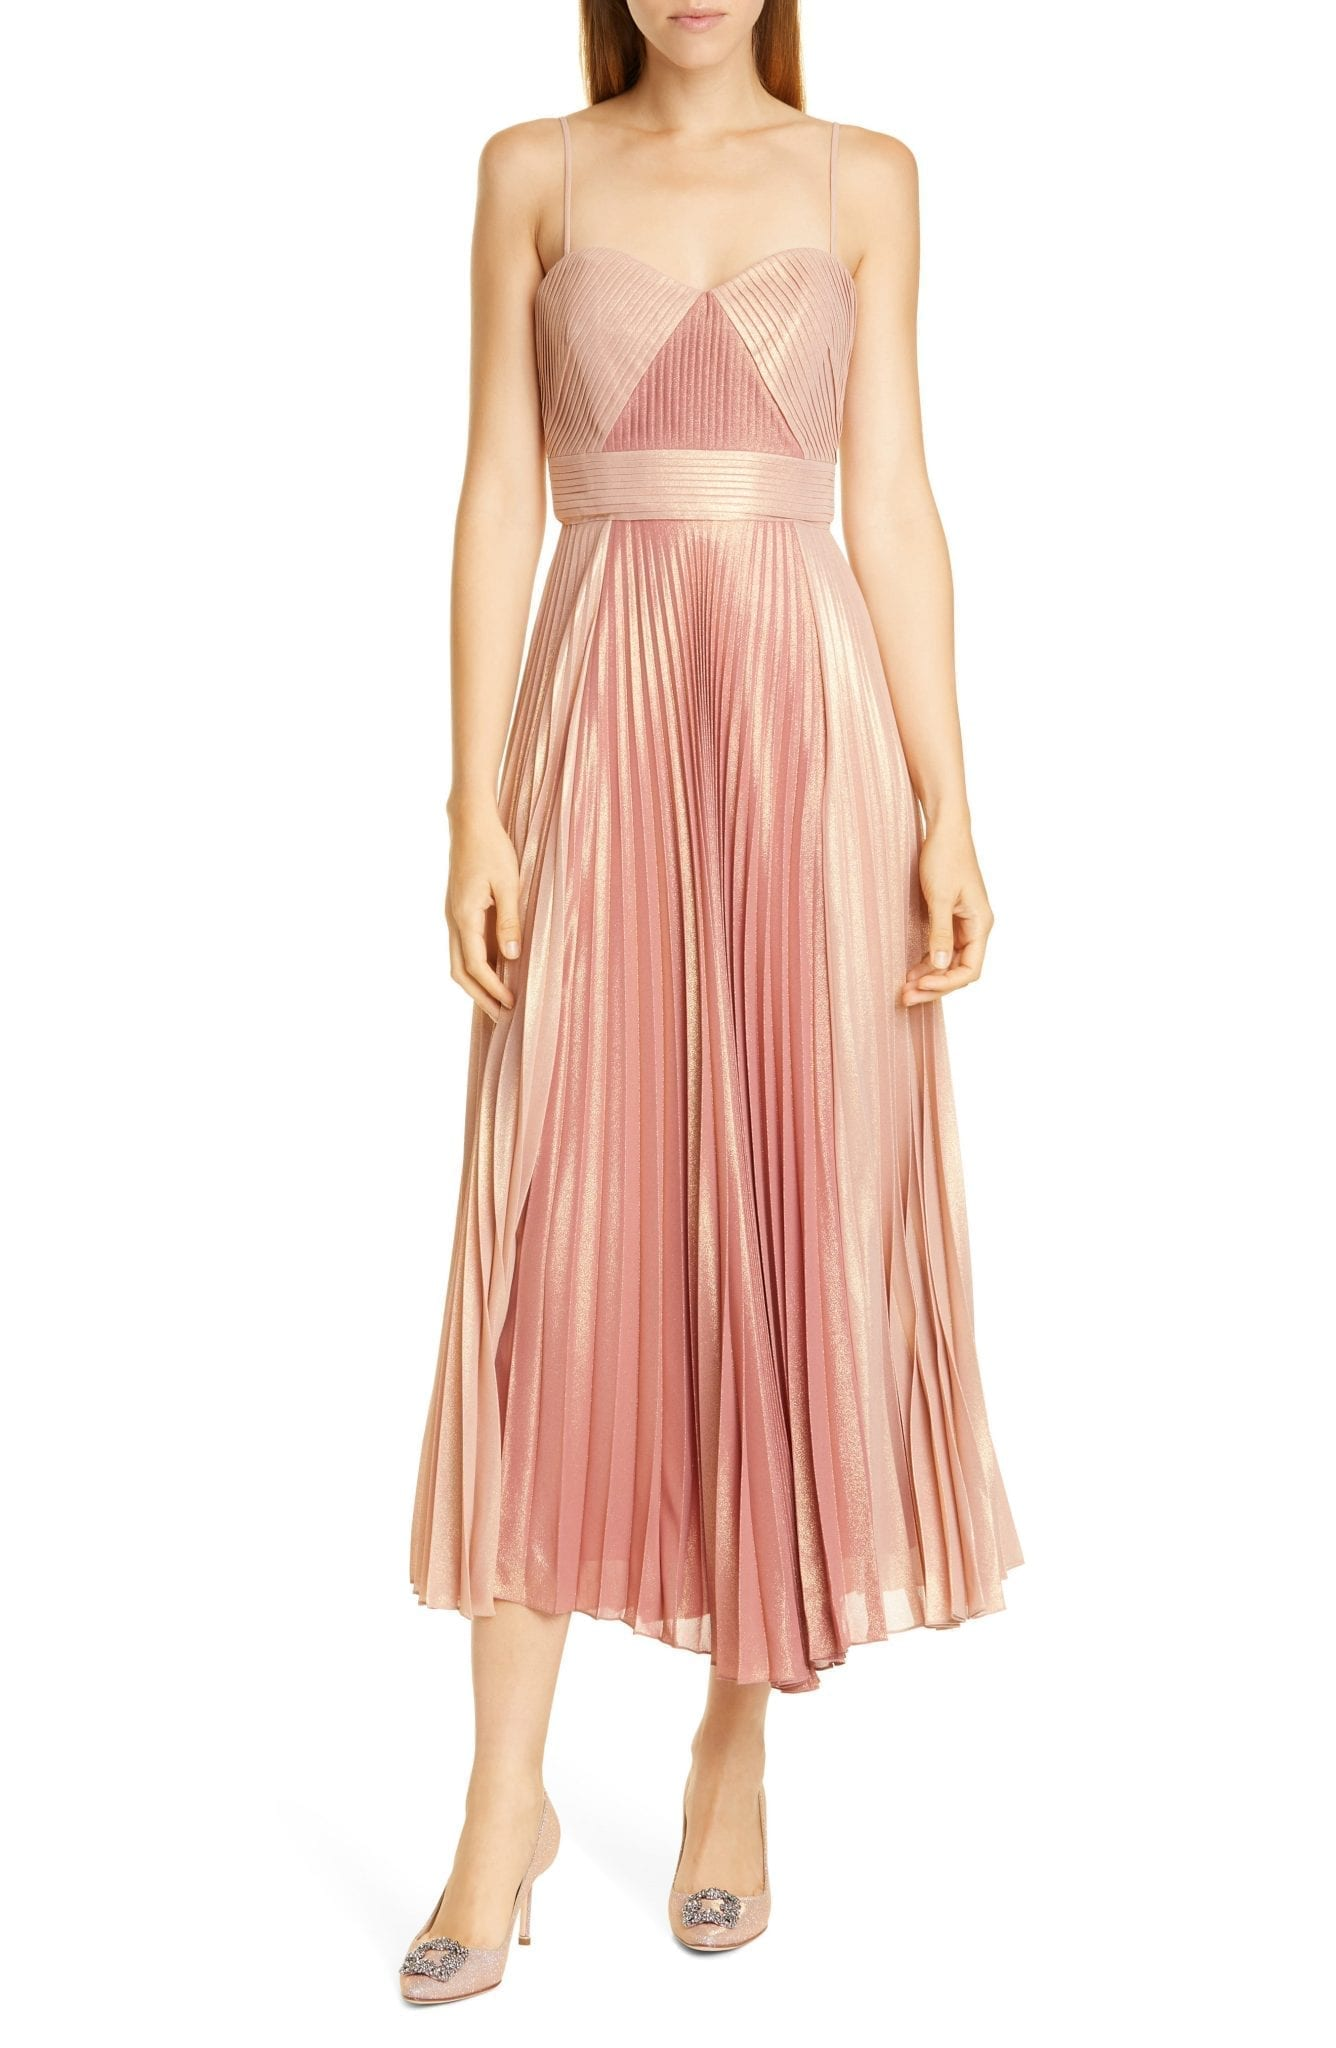 MARCHESA NOTTE Pleat A-Line Cocktail Dress